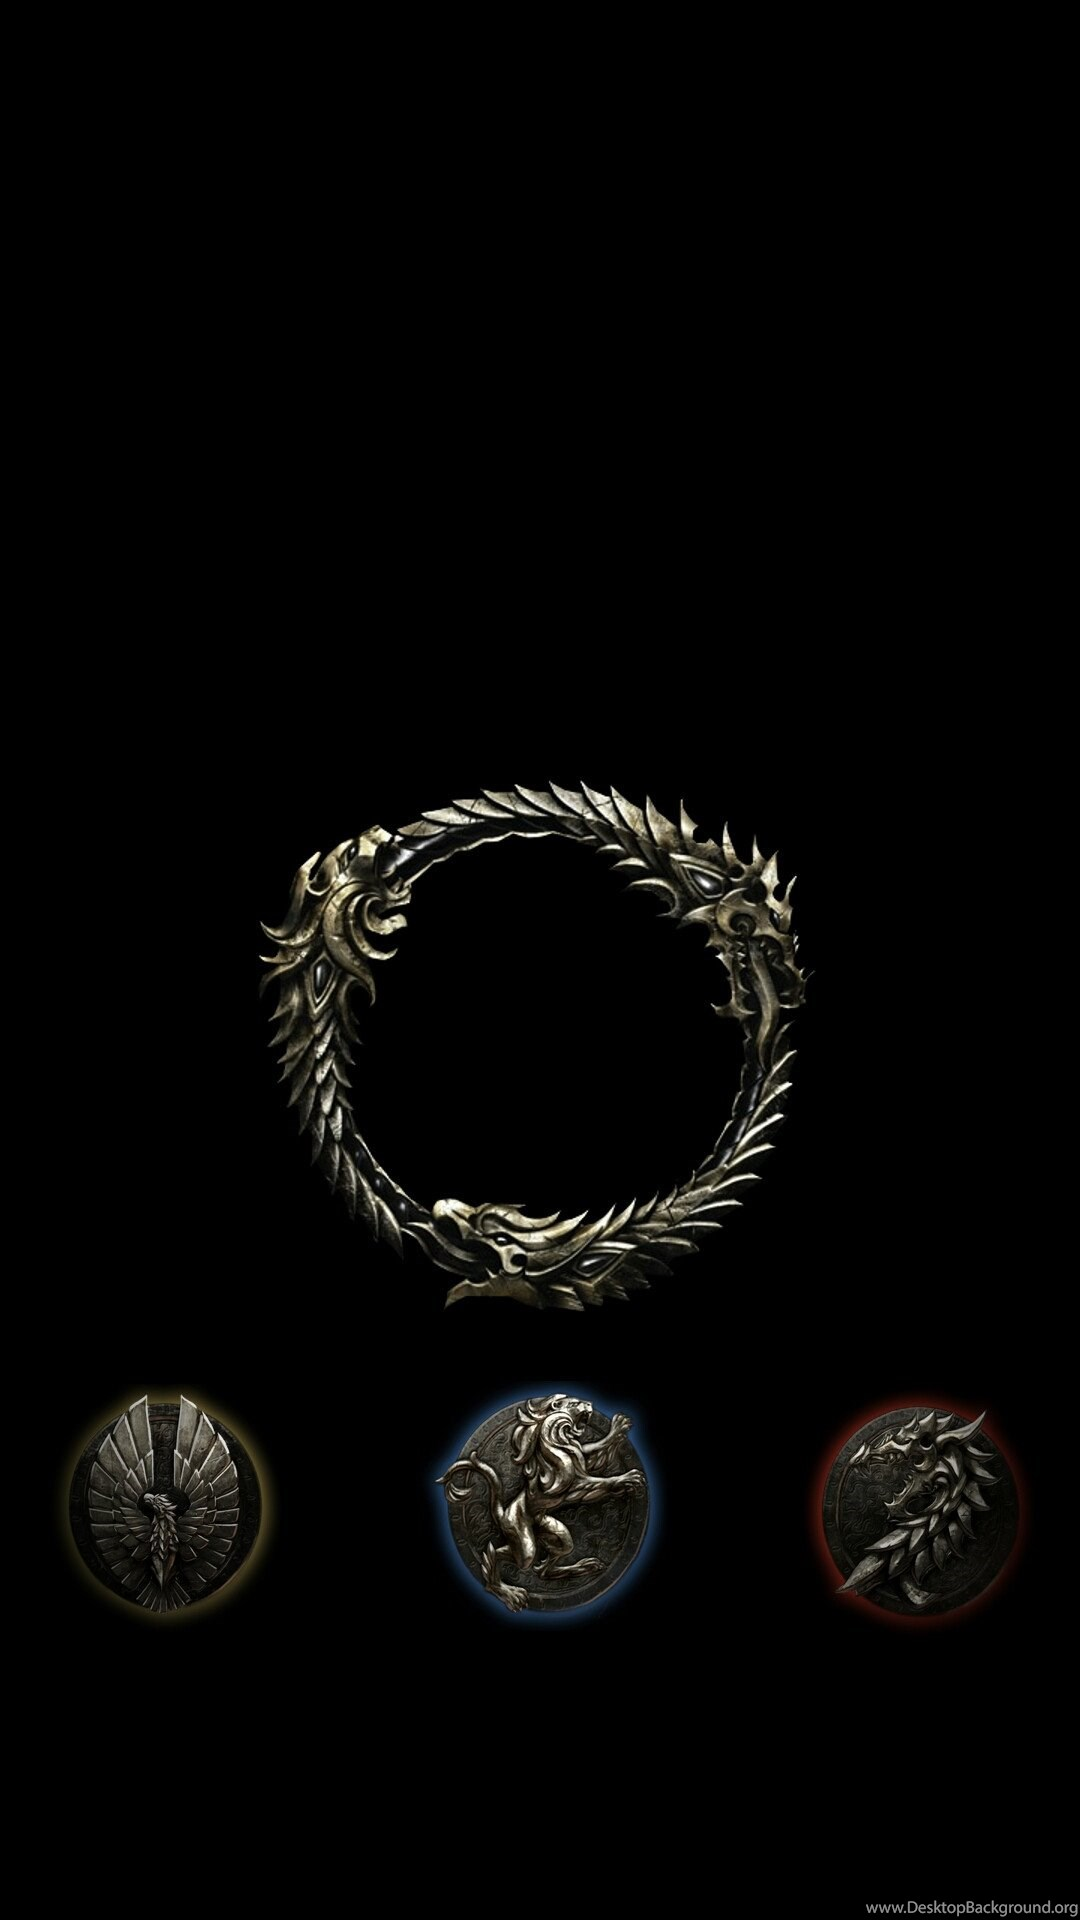 Simple Phone Wallpapers I Made To Celebrate The Launch Happy Eso